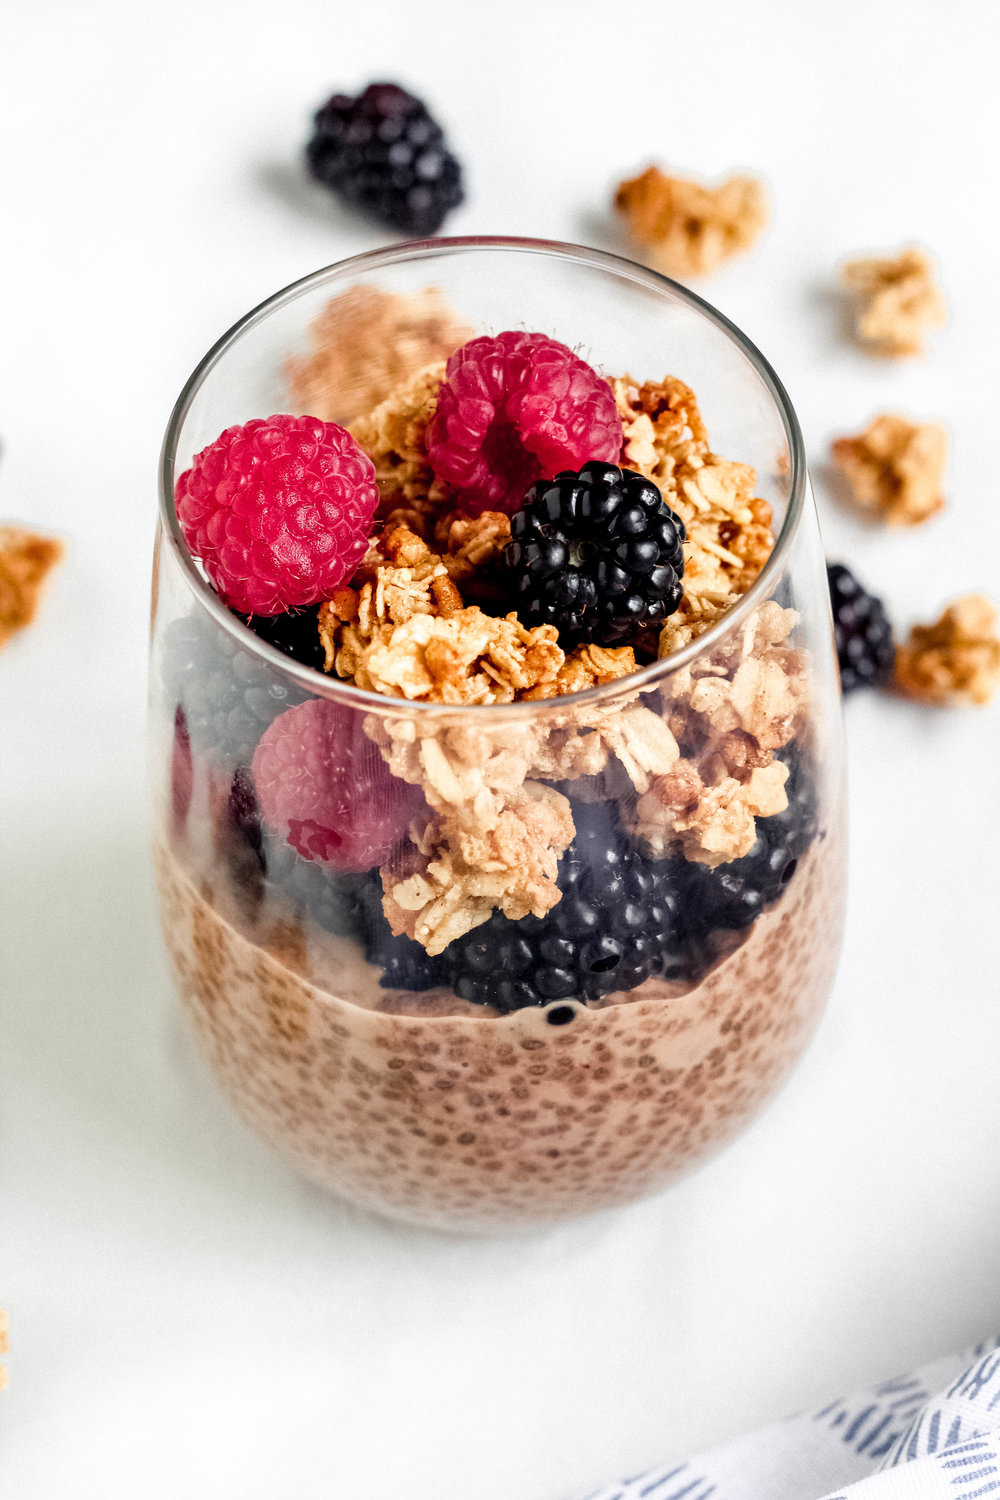 Chocolate Almond Butter Chia Seed Pudding